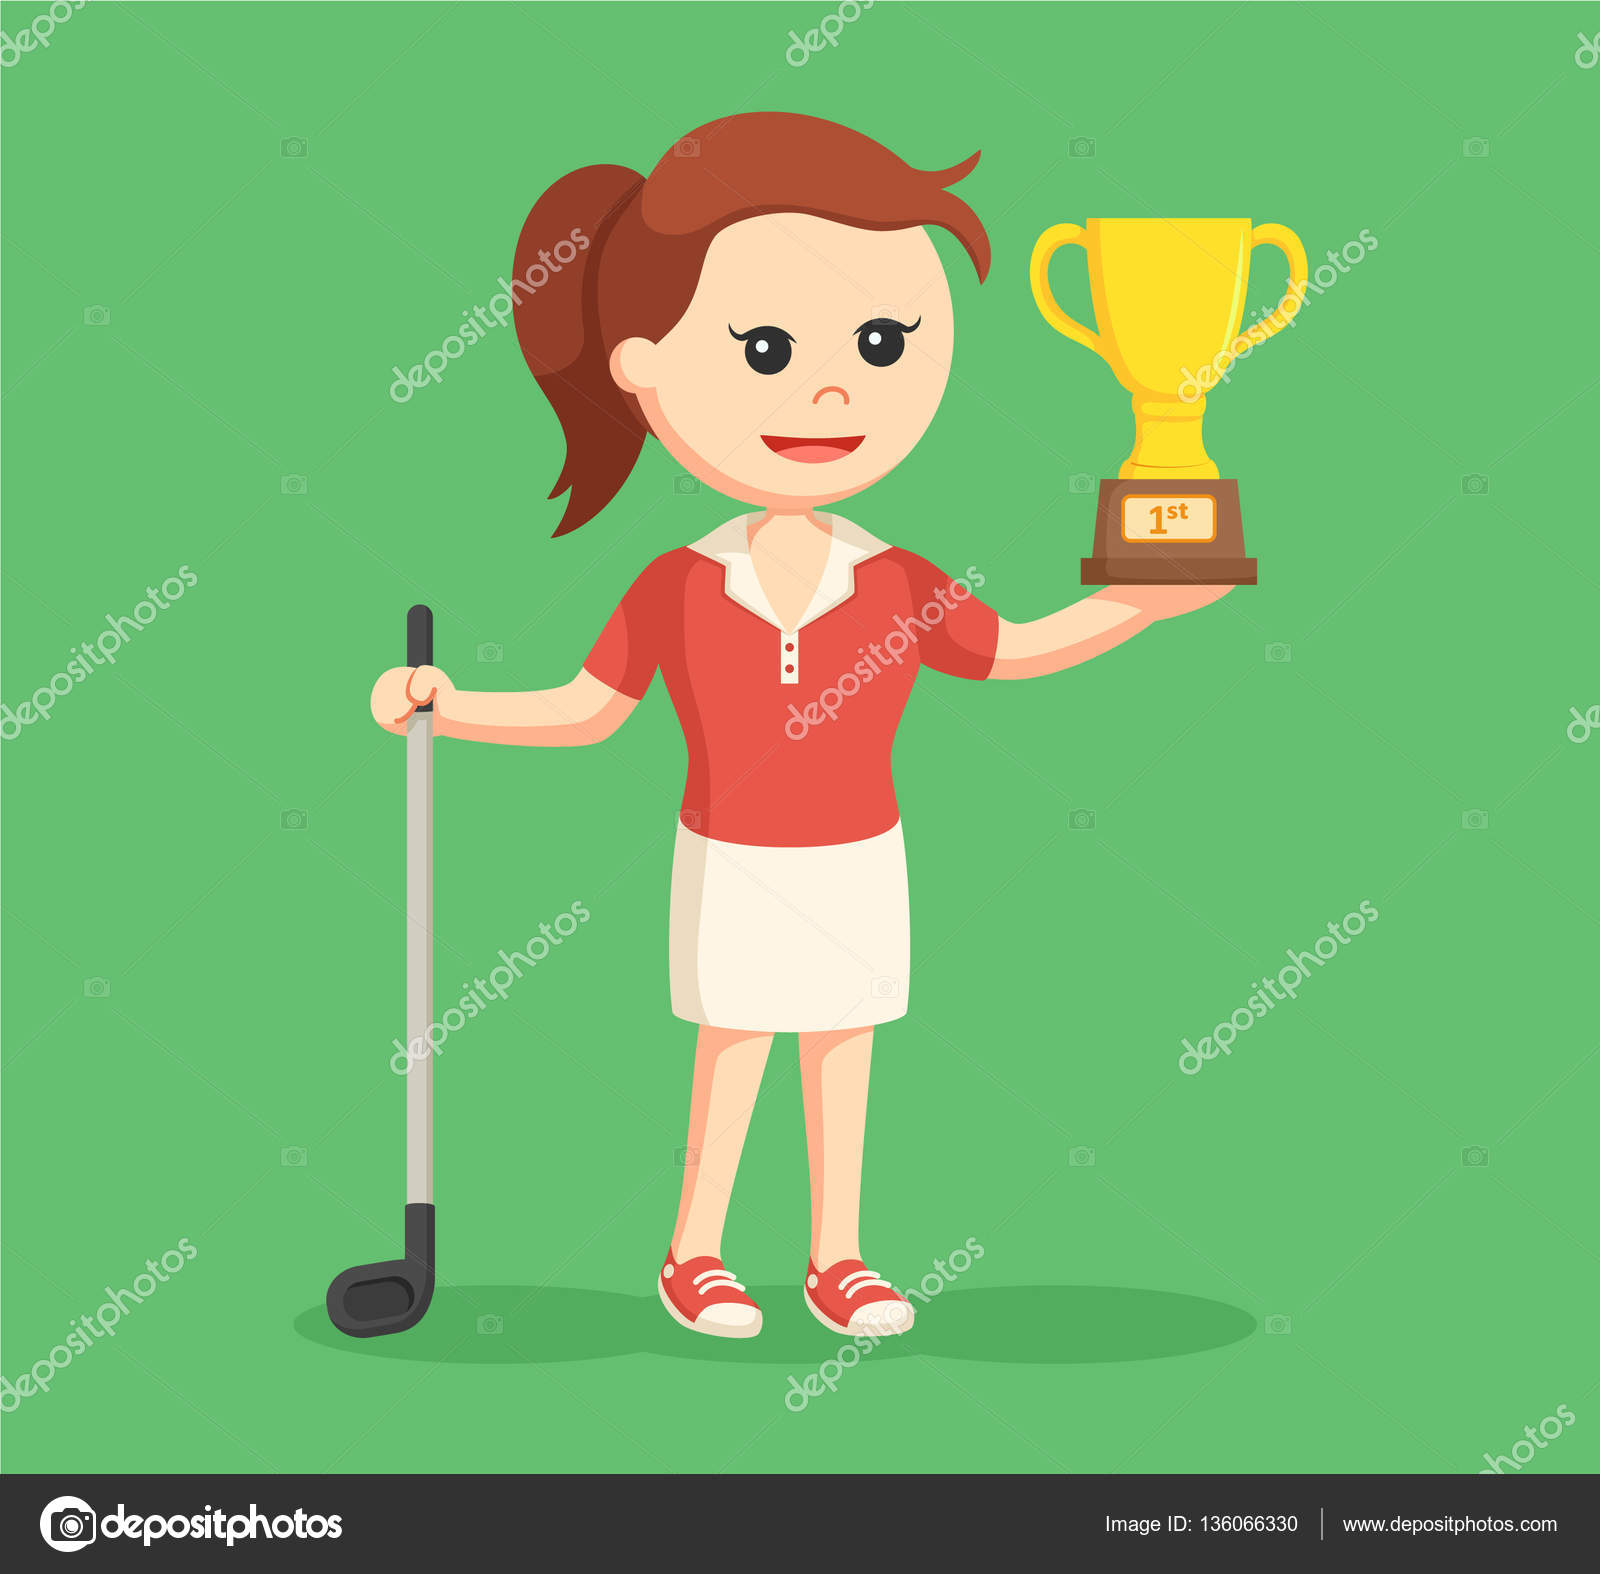 ᐈ Lady Golf Cartoon Stock Images Royalty Free Cartoon Female Golfer Pictures Download On Depositphotos